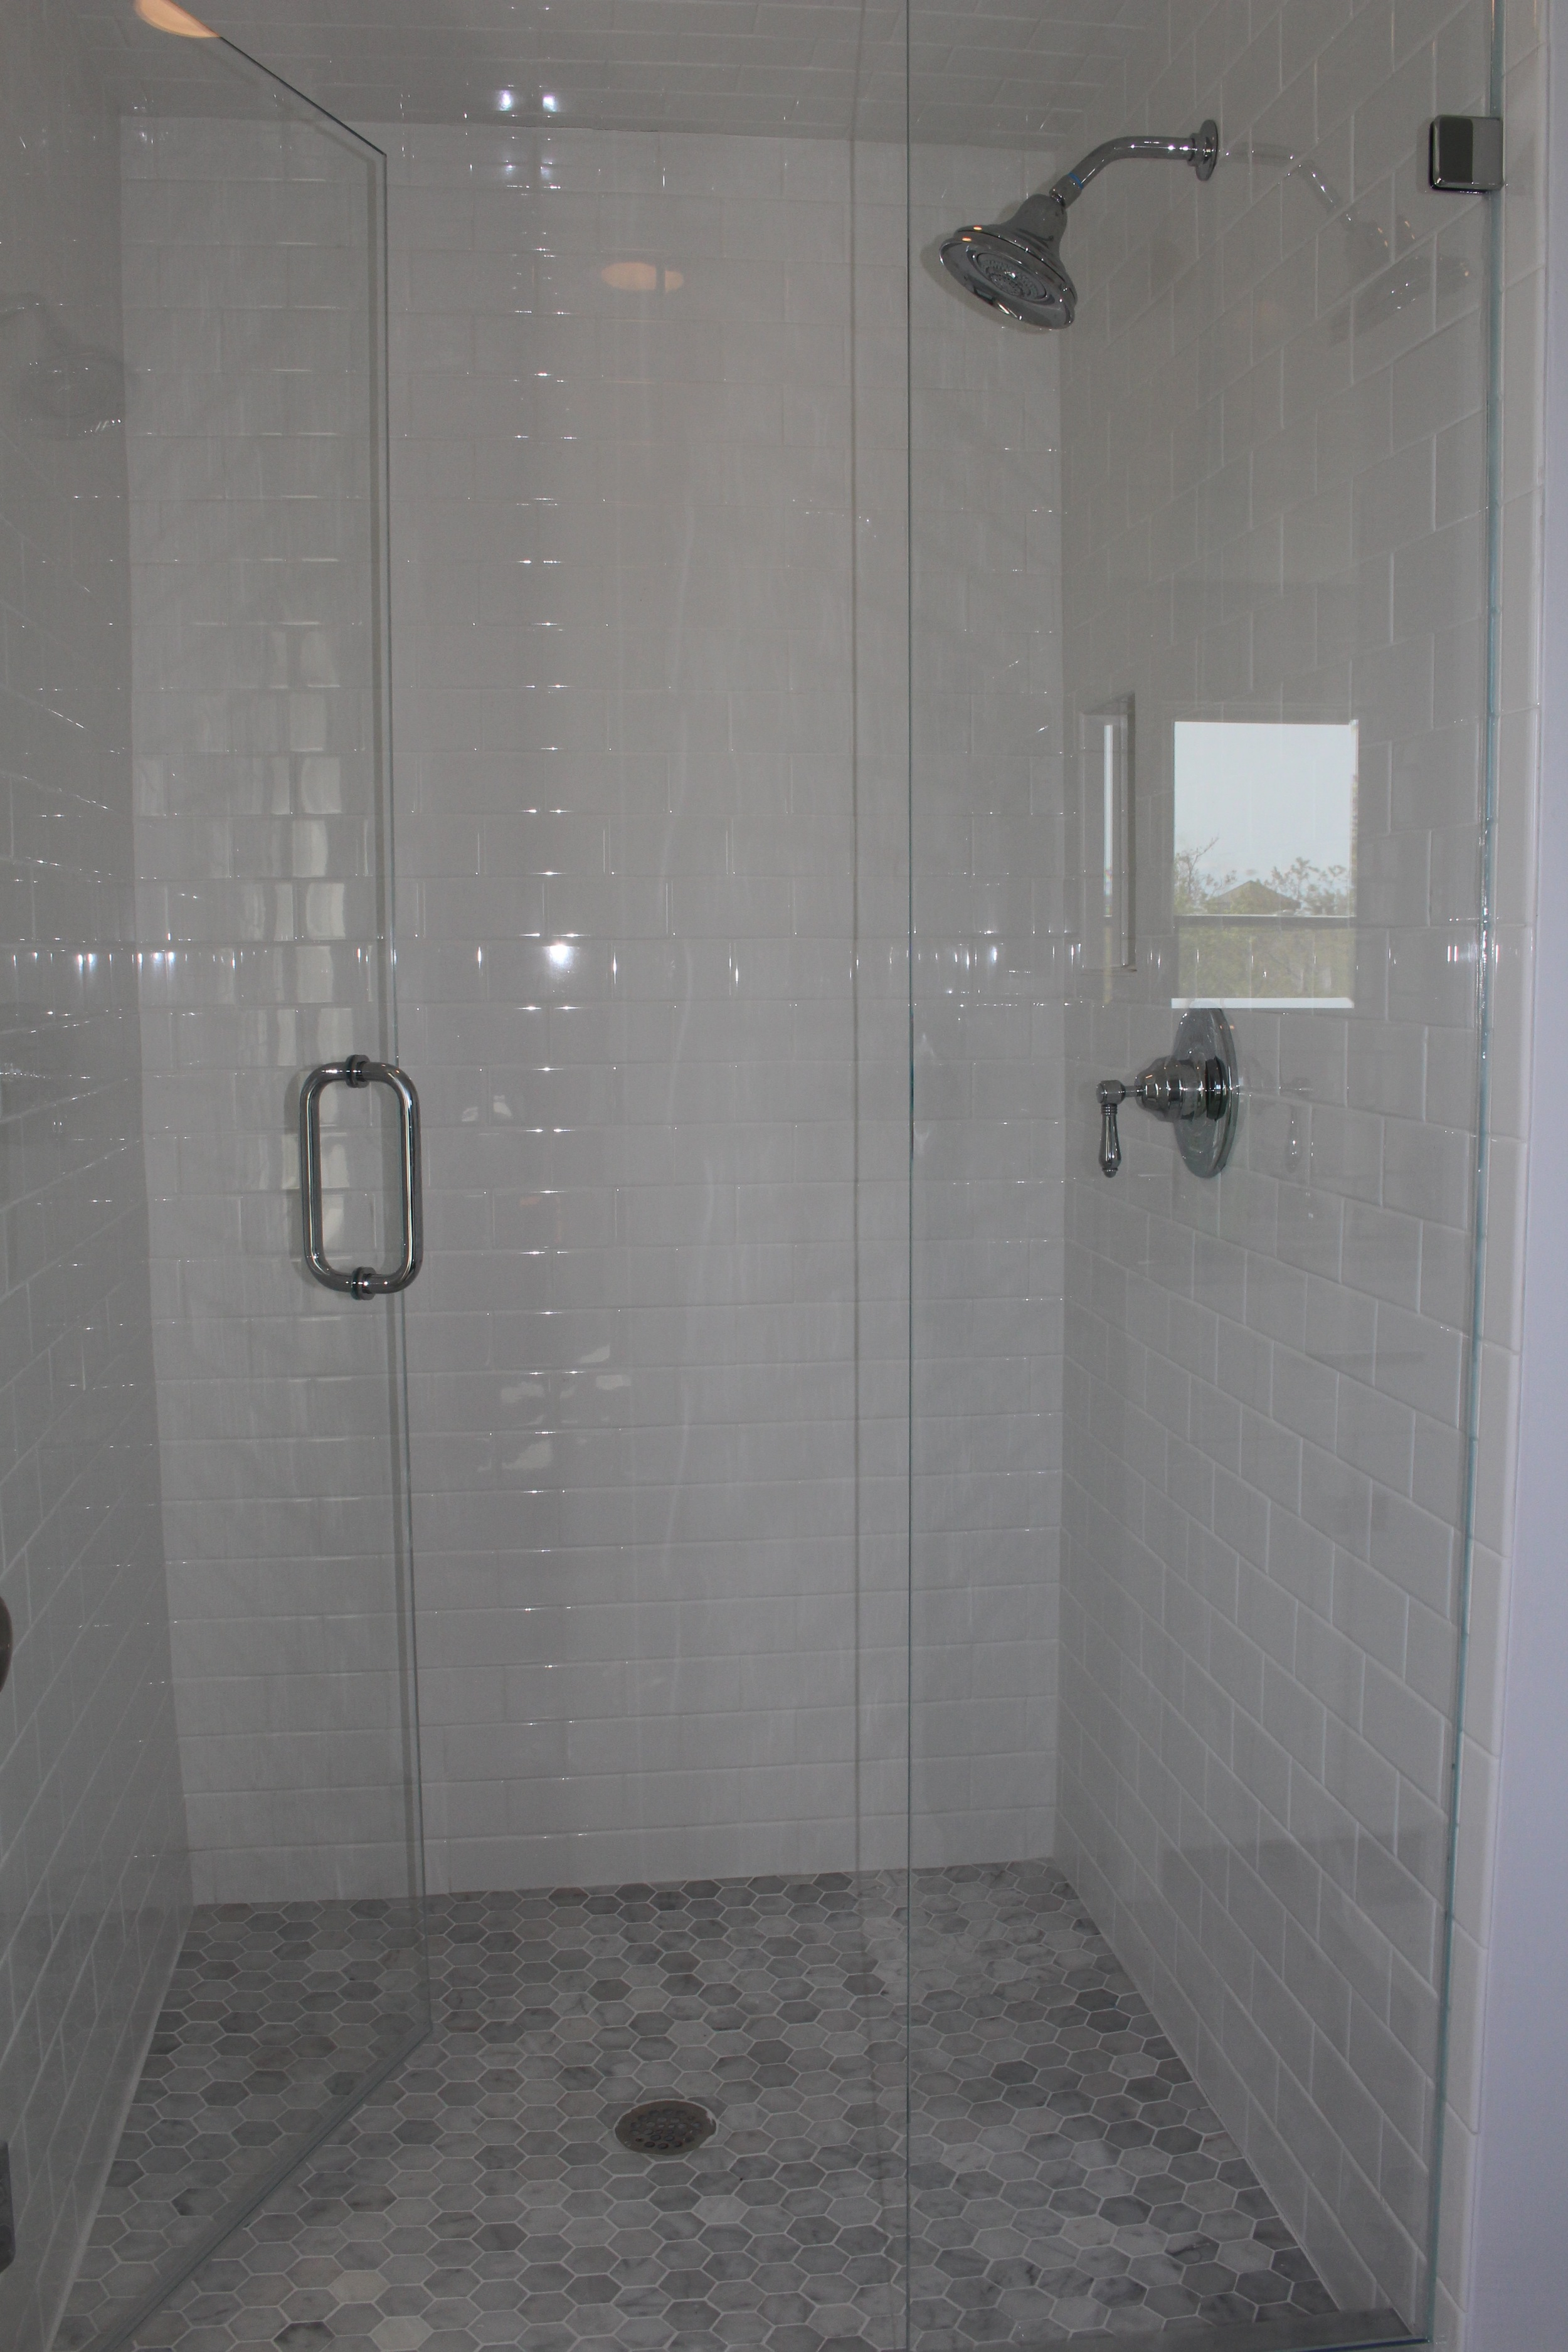 New tiled shower.